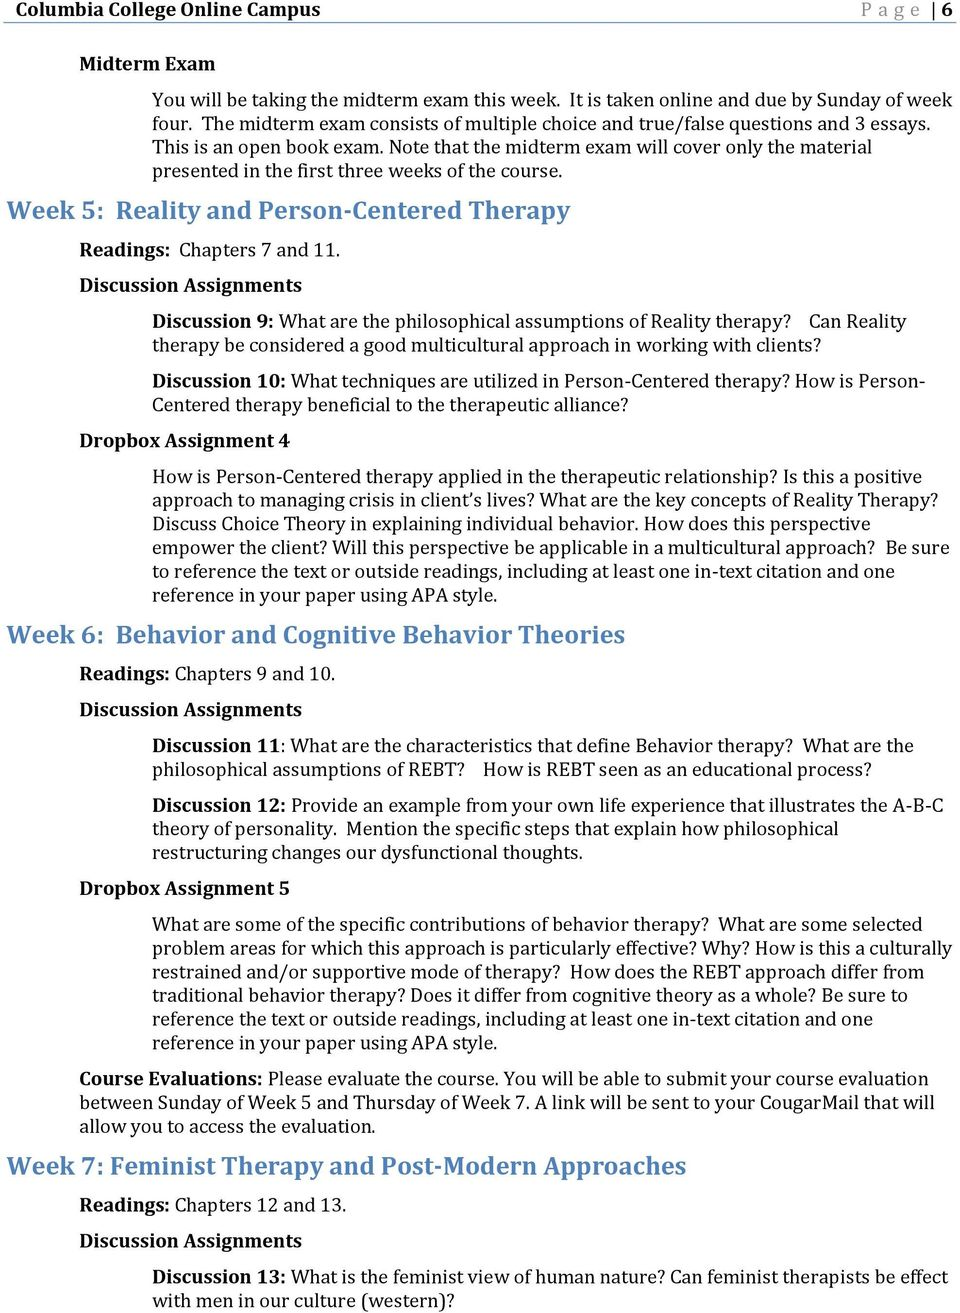 Note that the midterm exam will cover only the material presented in the first three weeks of the course. Week 5: Reality and Person-Centered Therapy Readings: Chapters 7 and 11.